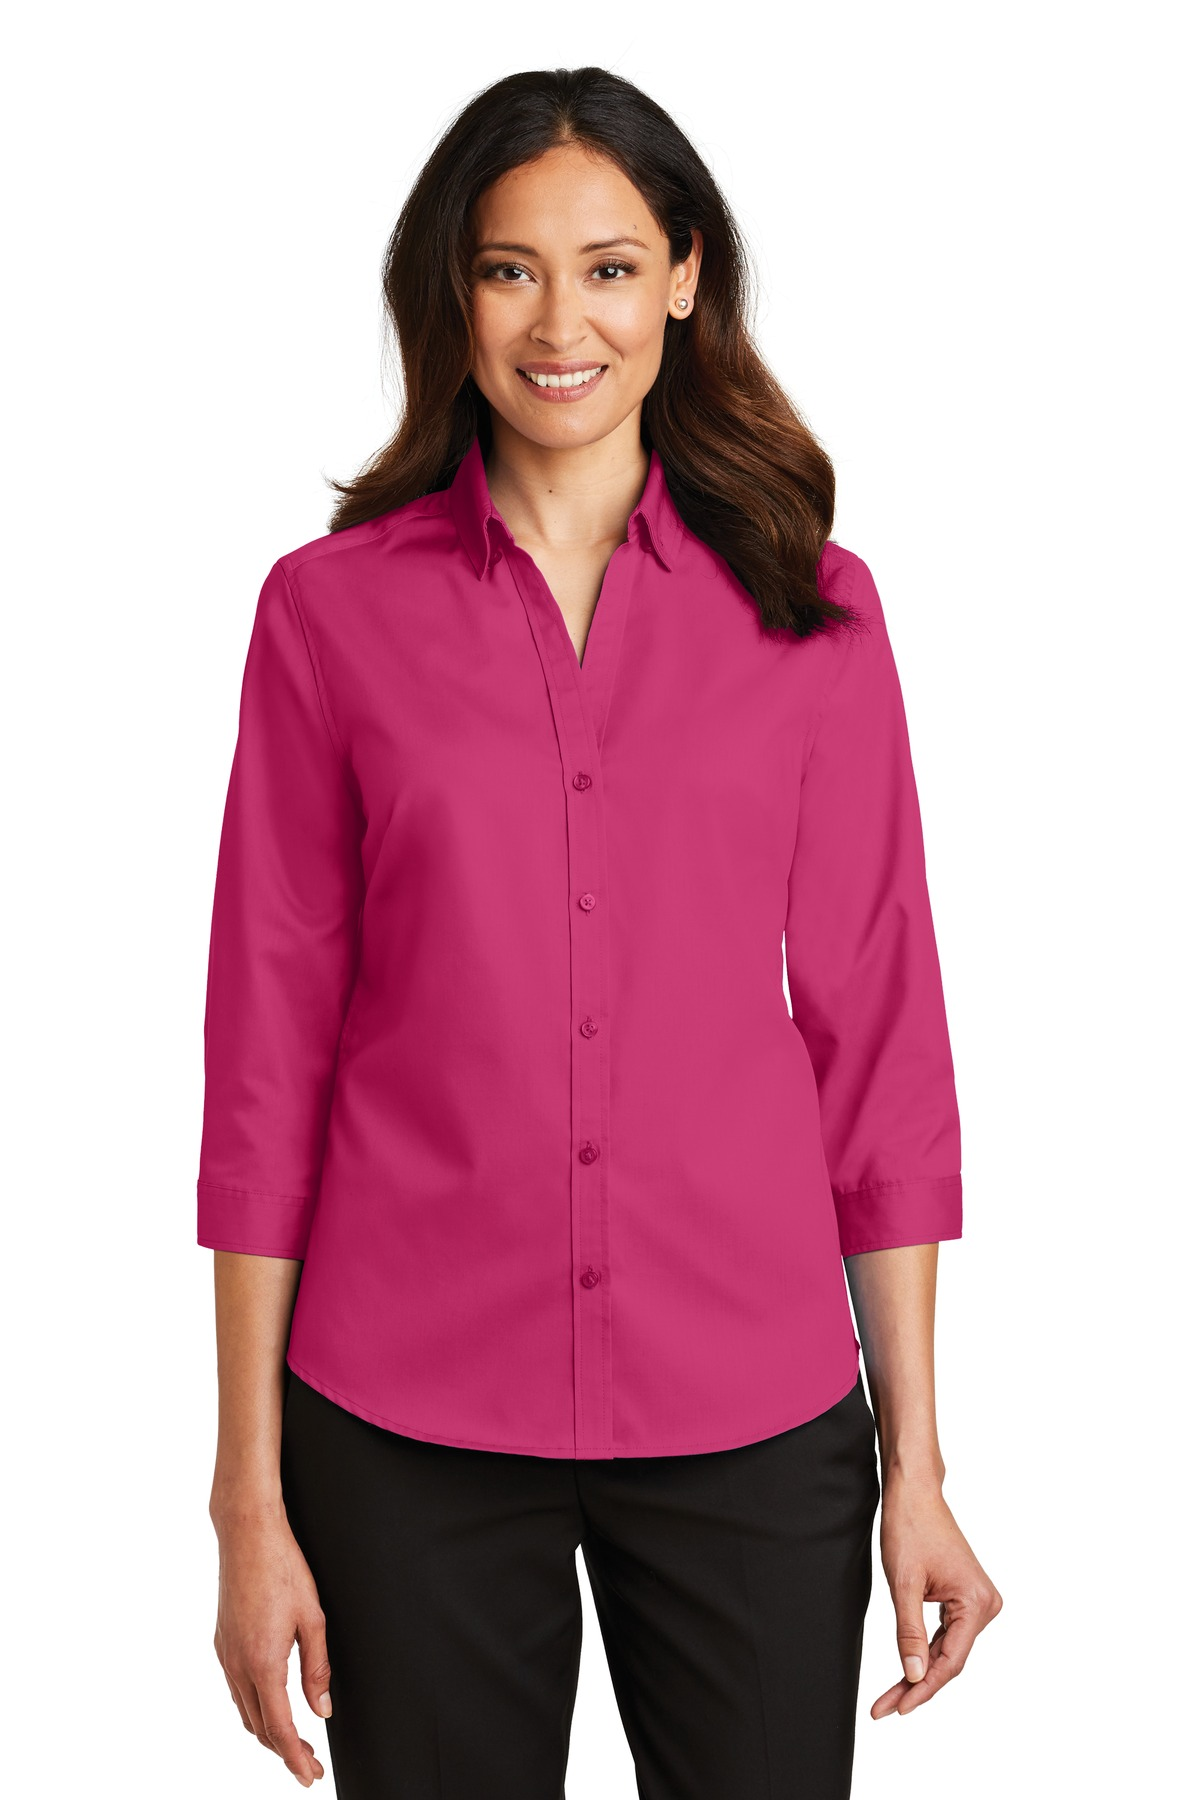 Port Authority ®  Ladies 3/4-Sleeve SuperPro ™  Twill Shirt. L665 - Pink Azalea